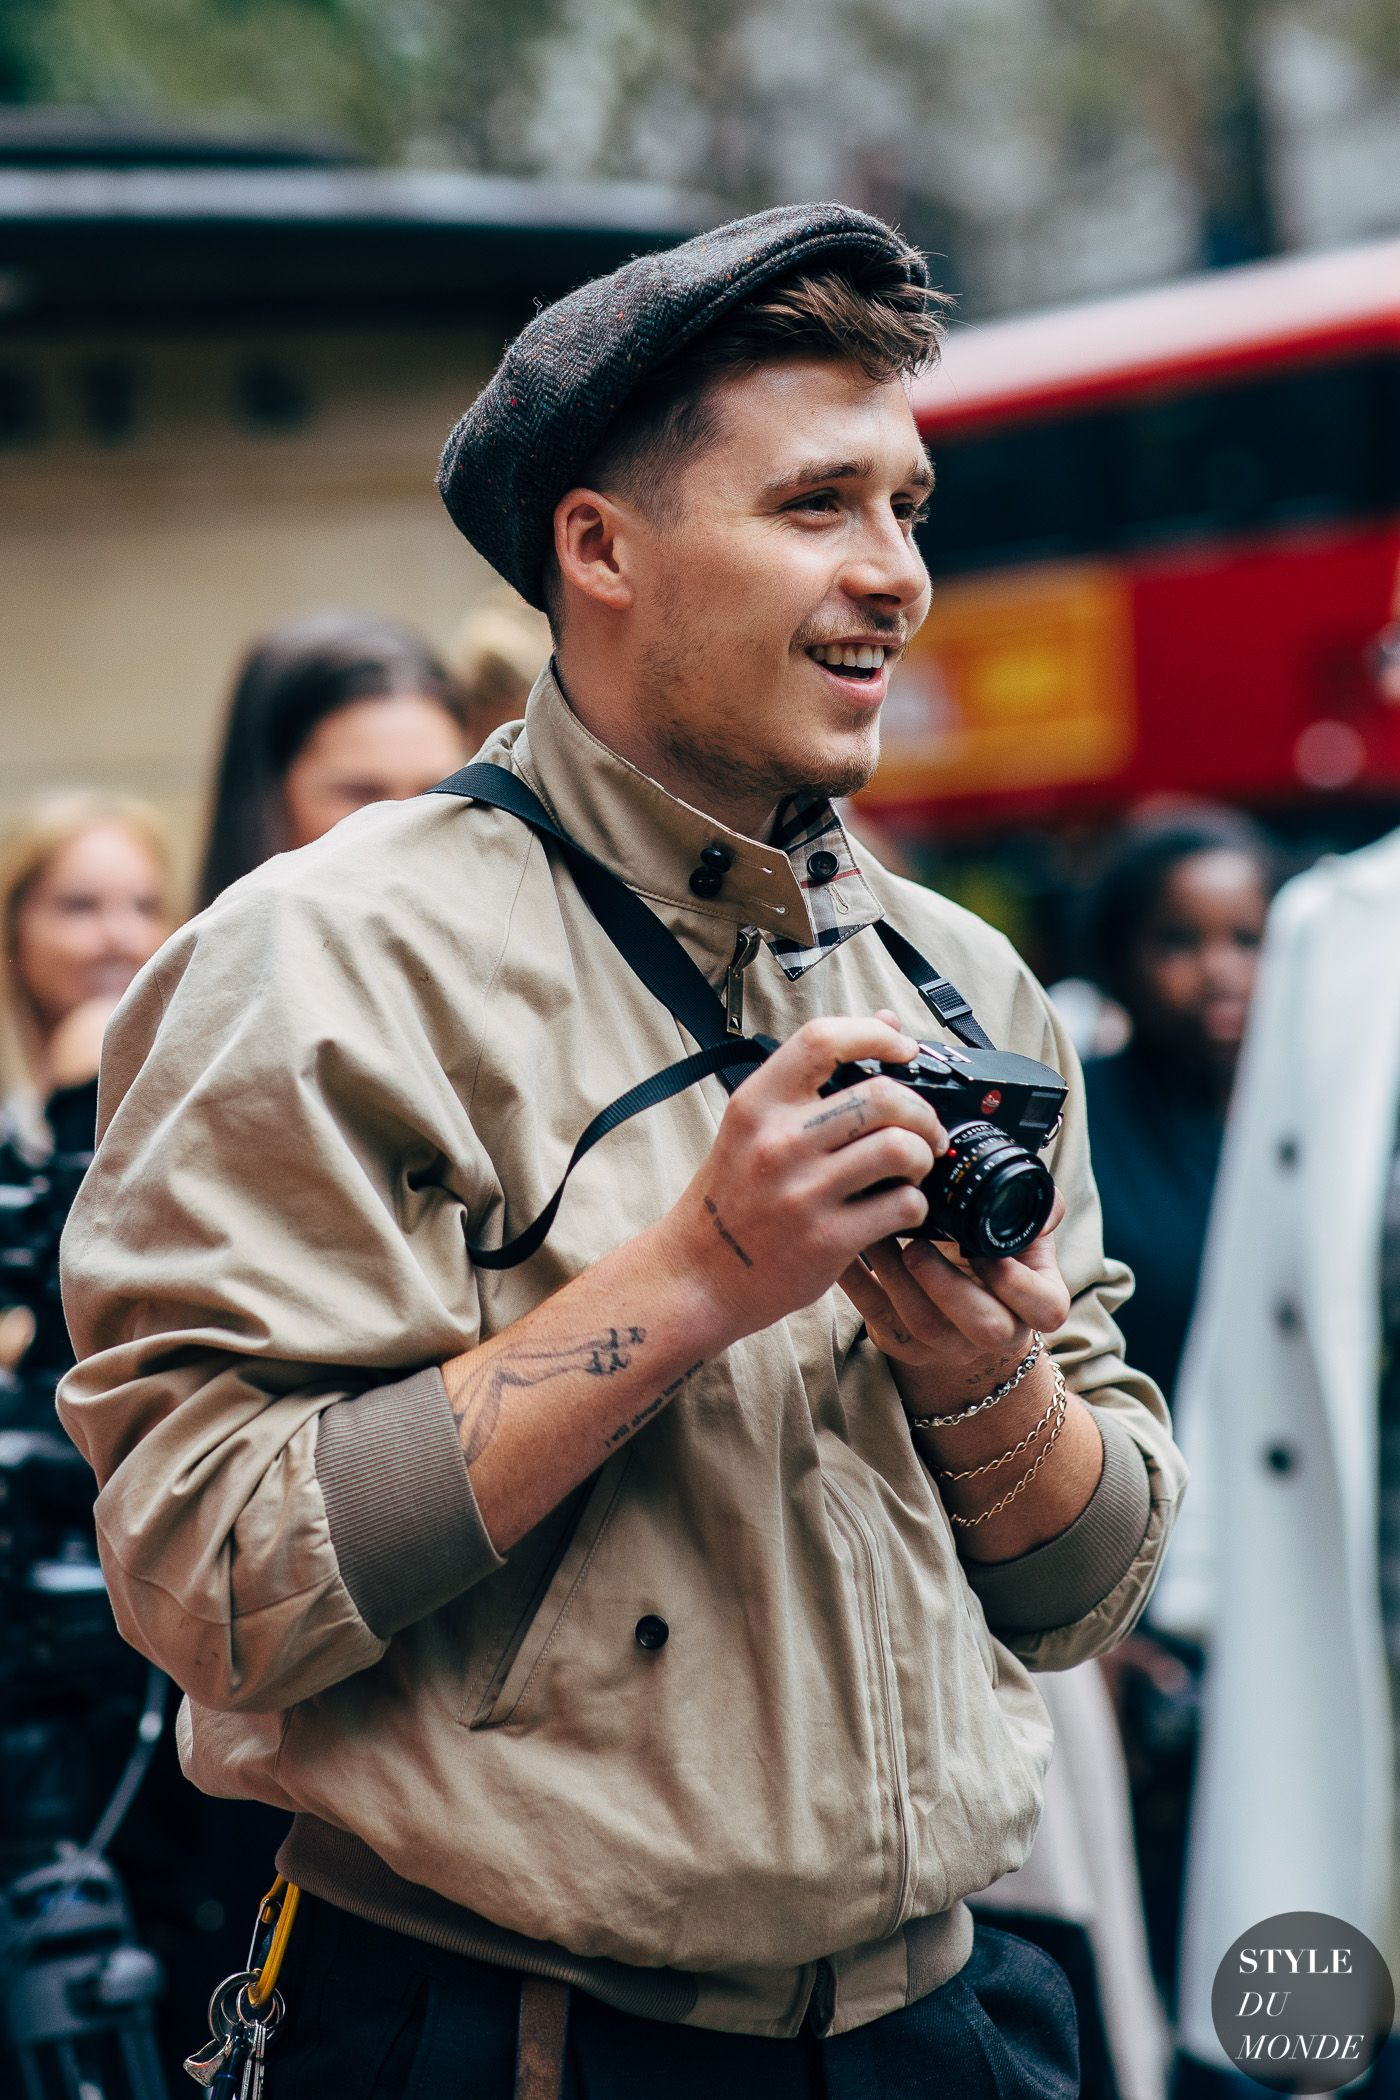 2804f1d79de Brooklyn Beckham by STYLEDUMONDE Street Style Fashion  Photography20180914 48A2683